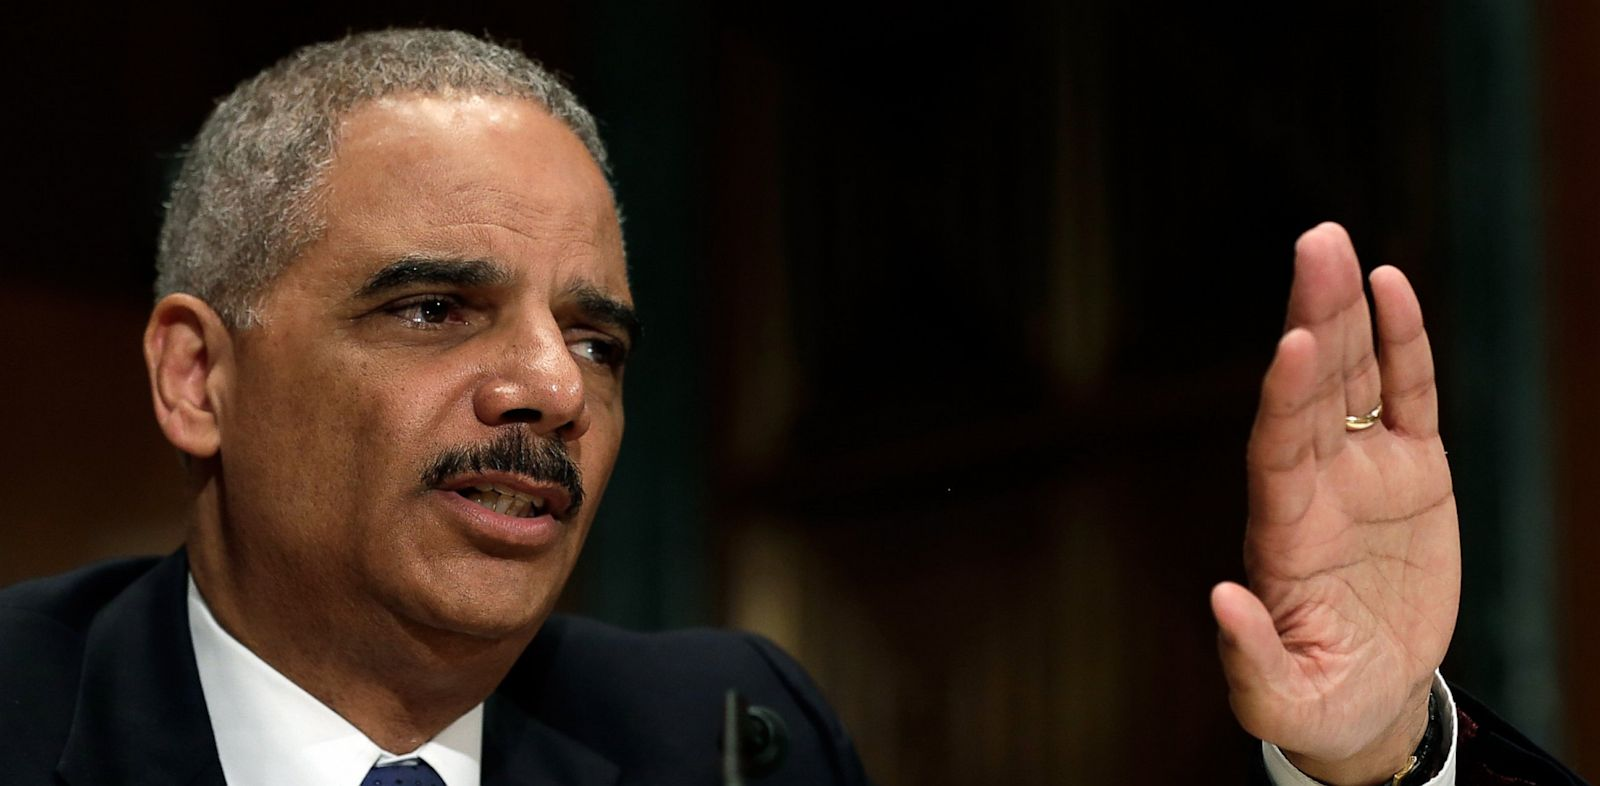 PHOTO: U.S. Attorney General Eric Holder testifies before the Senate Appropriations Committee June 6, 2013 in Washington, D.C.